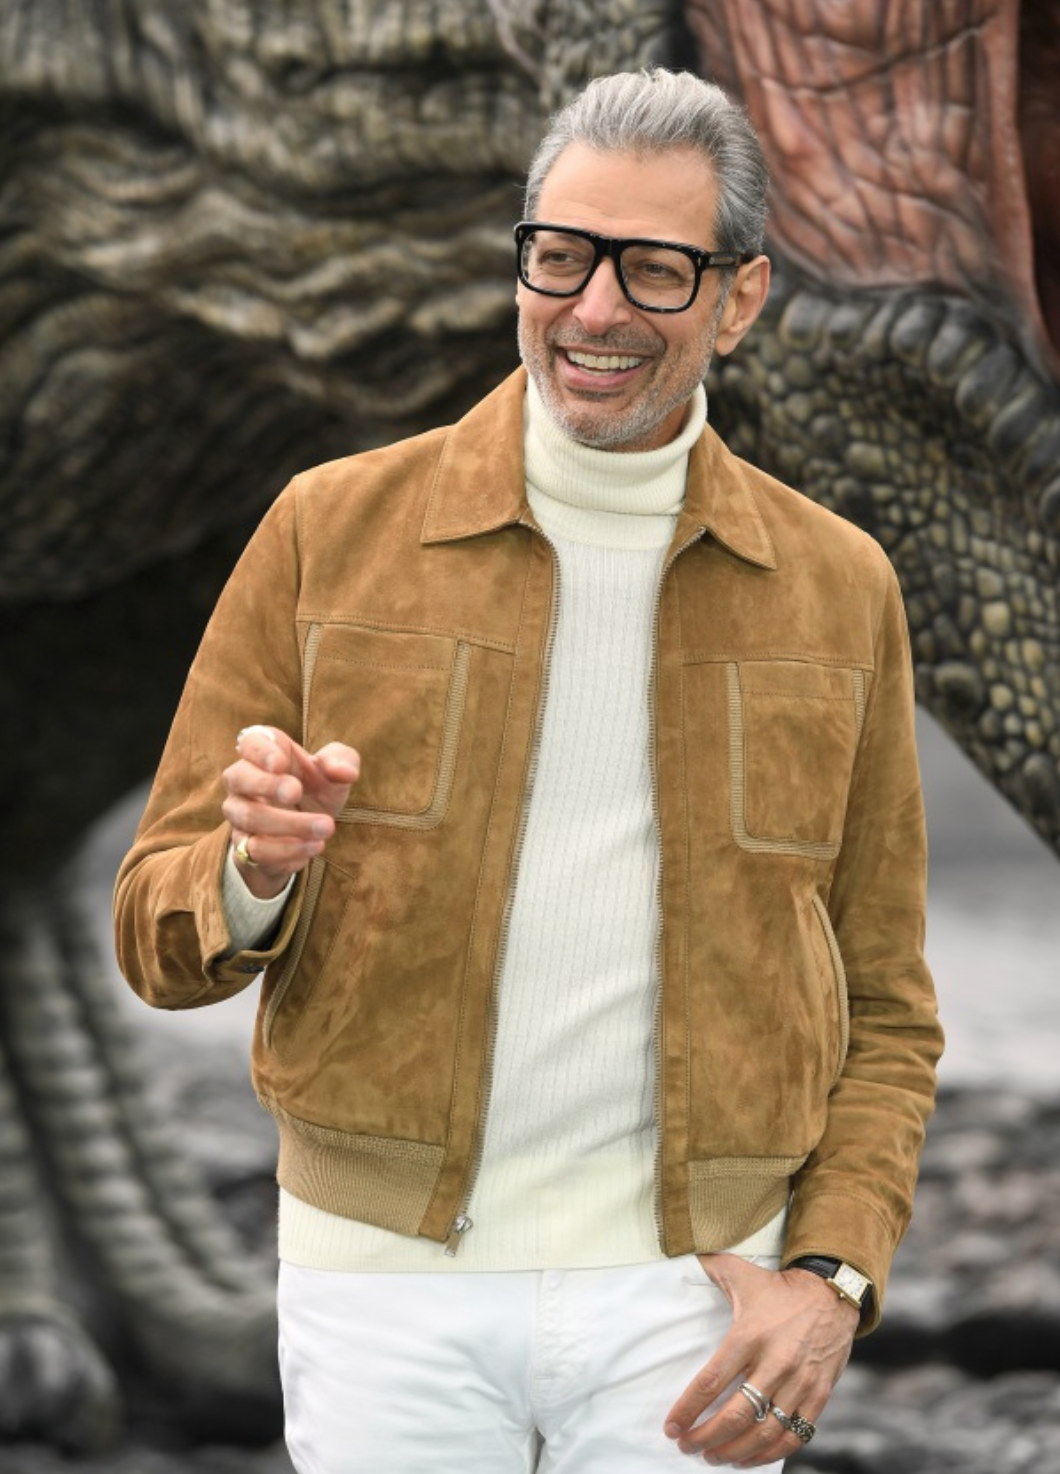 Actor Jeff Goldblum wearing a cream colored turtleneck sweater and brown suede jacket